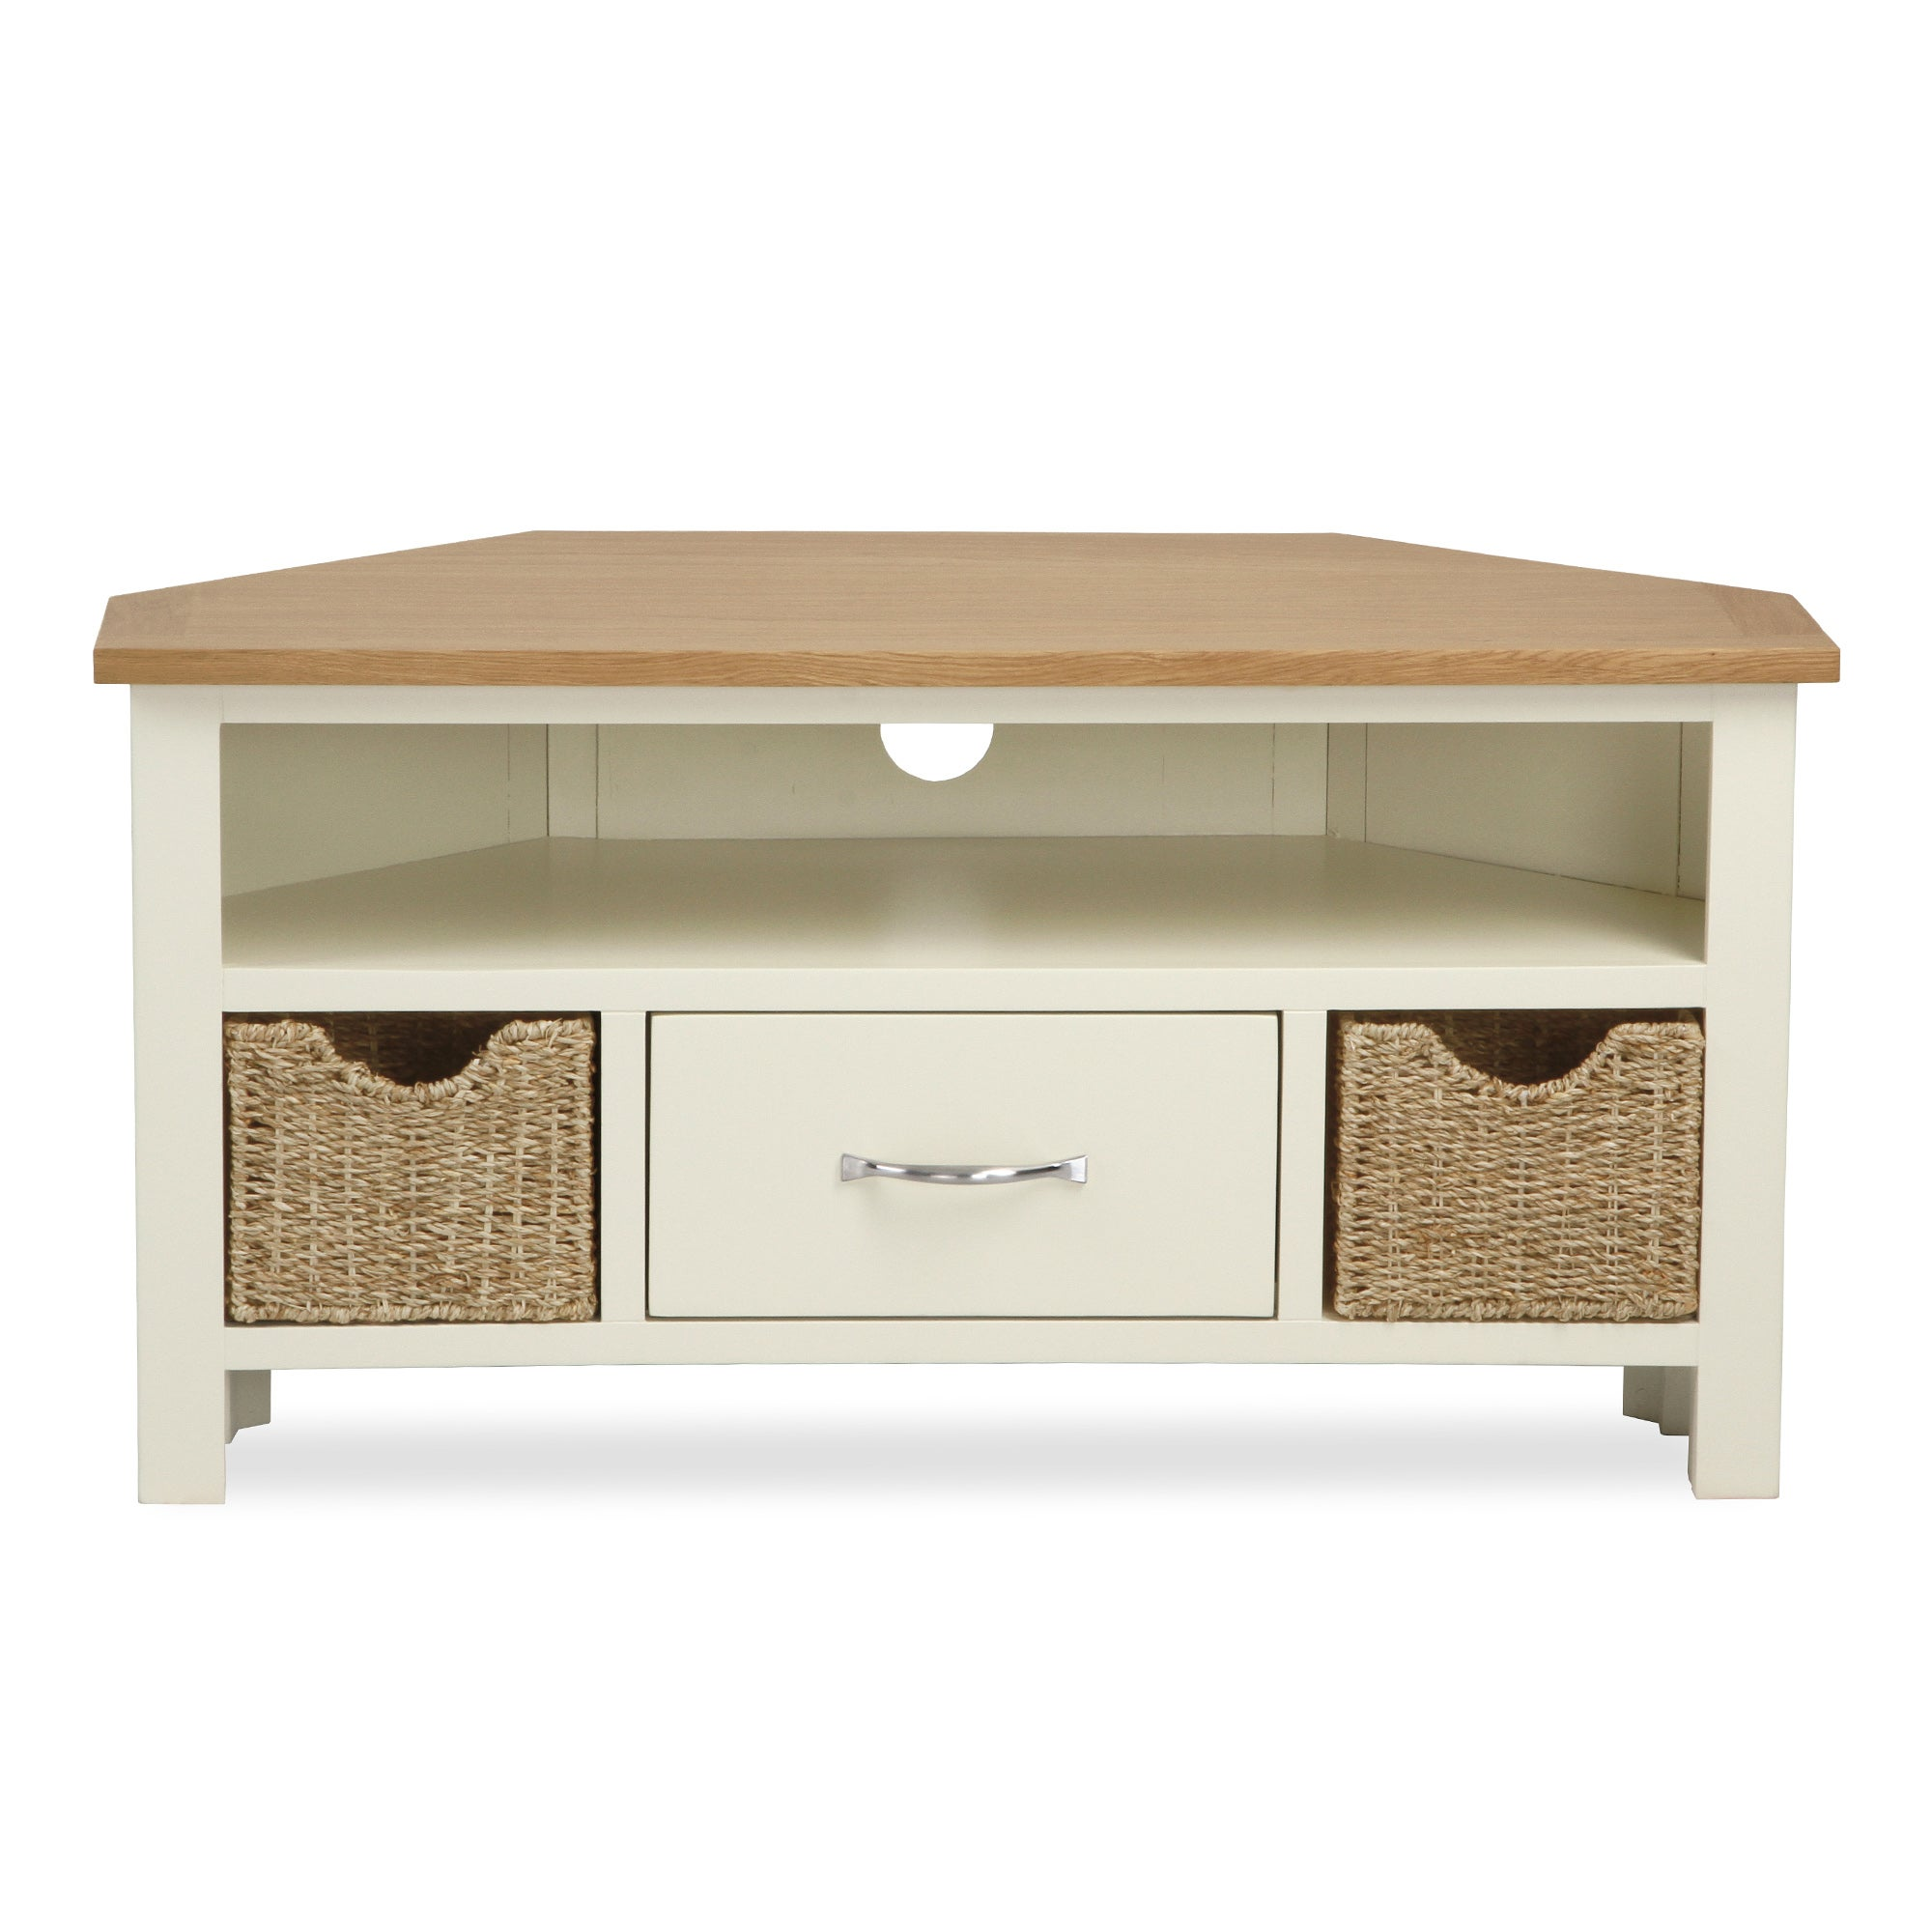 Photo of Sidmouth cream corner tv stand cream